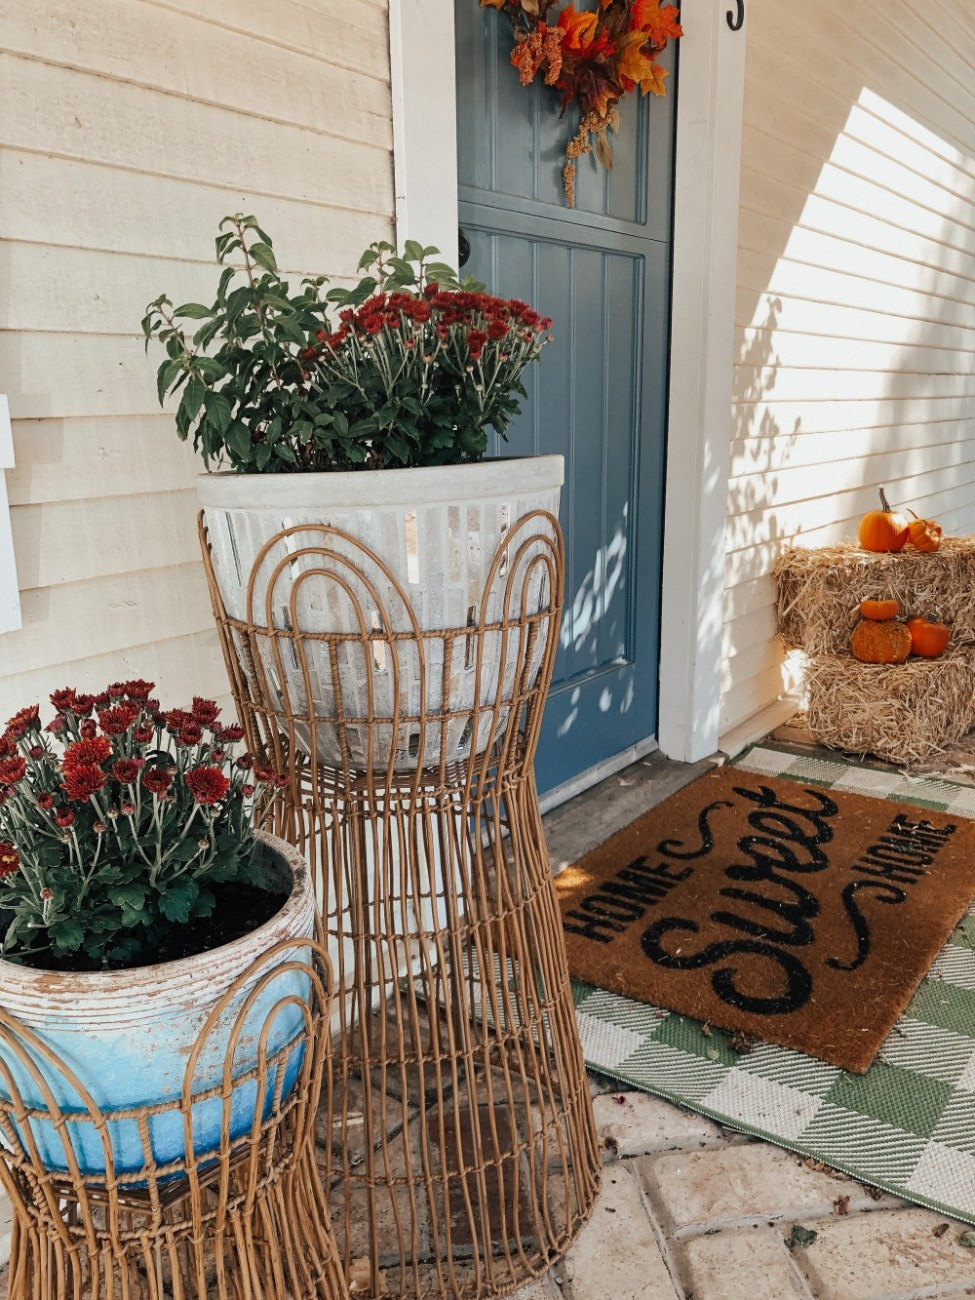 How to Create the Perfect Fall Porch. Sharing the 6 elements every fall porch needs on the blog. Click on over to read the post! #fallporch #fallporchdecor #porchdecor